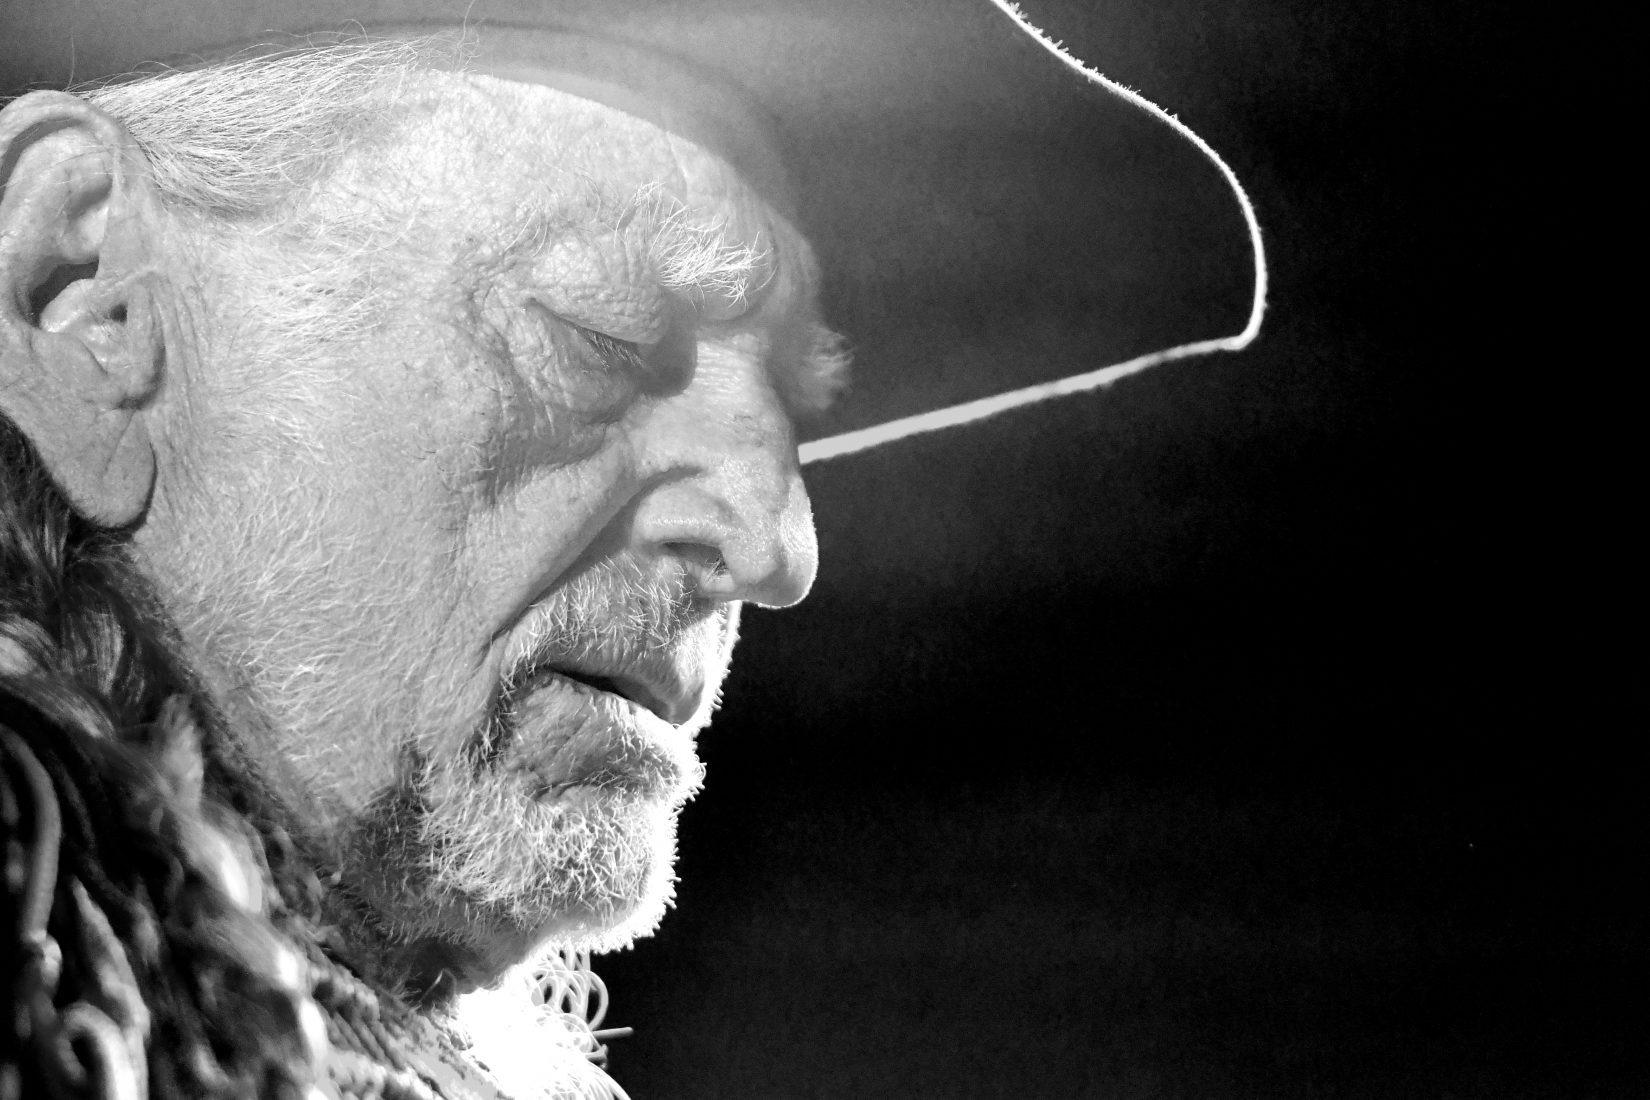 """Country music legend and legalization activist Willie Nelson plays a show at Humphreys Concerts by the Bay in San Diego in October 2016. (photo by Vince Chandler, The Denver Post; published in  The Cannabist,  """"Willie Nelson: The Outlaw Country legend reflects on his personal cannabis history"""")"""